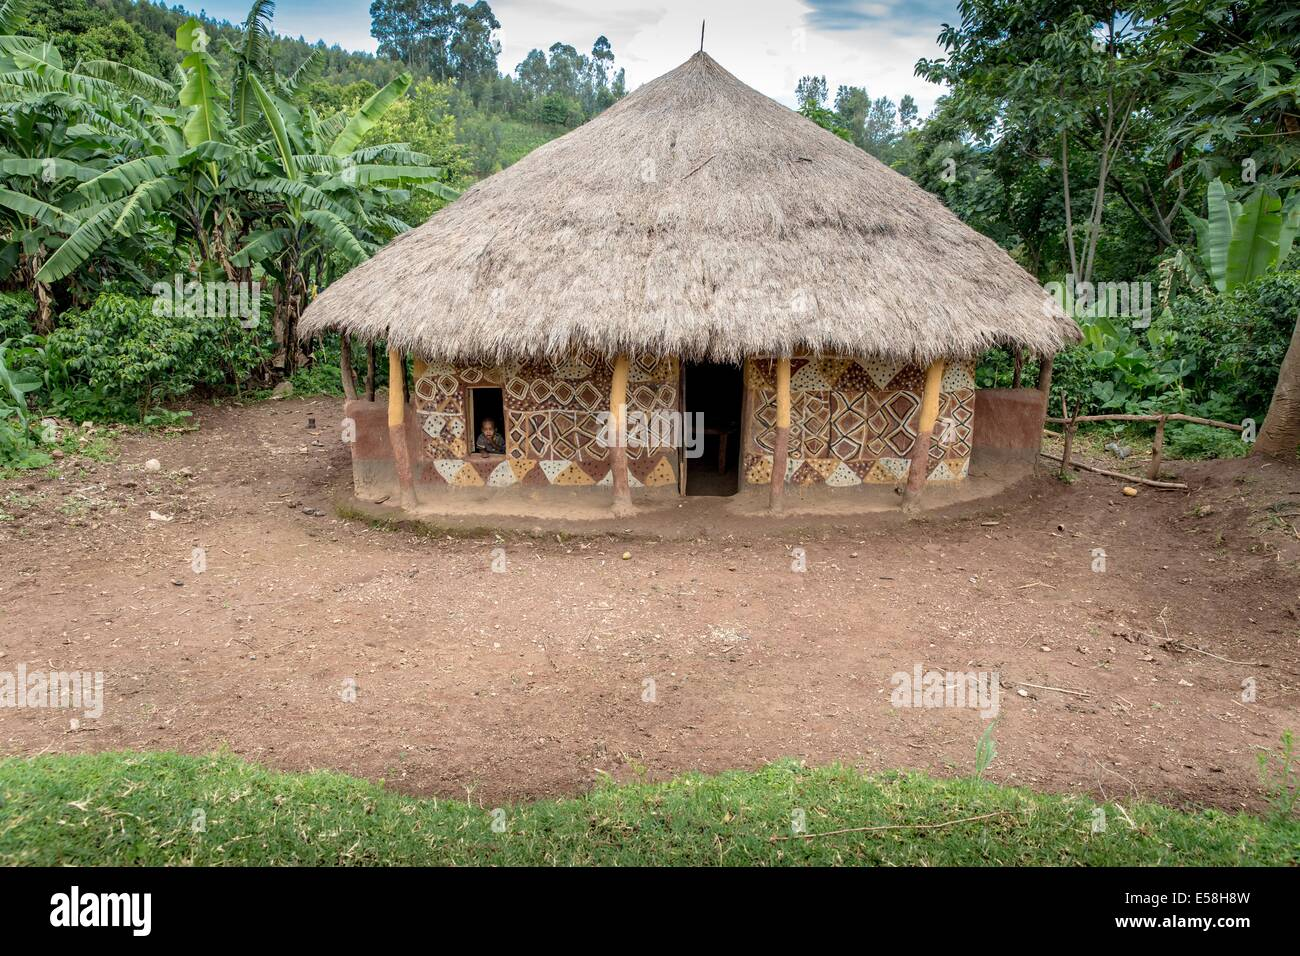 The Bench tribe live in the Southern Nations, Nationalities and Peoples Region of Southern Ethiopia. 24 May 2014 - Stock Image